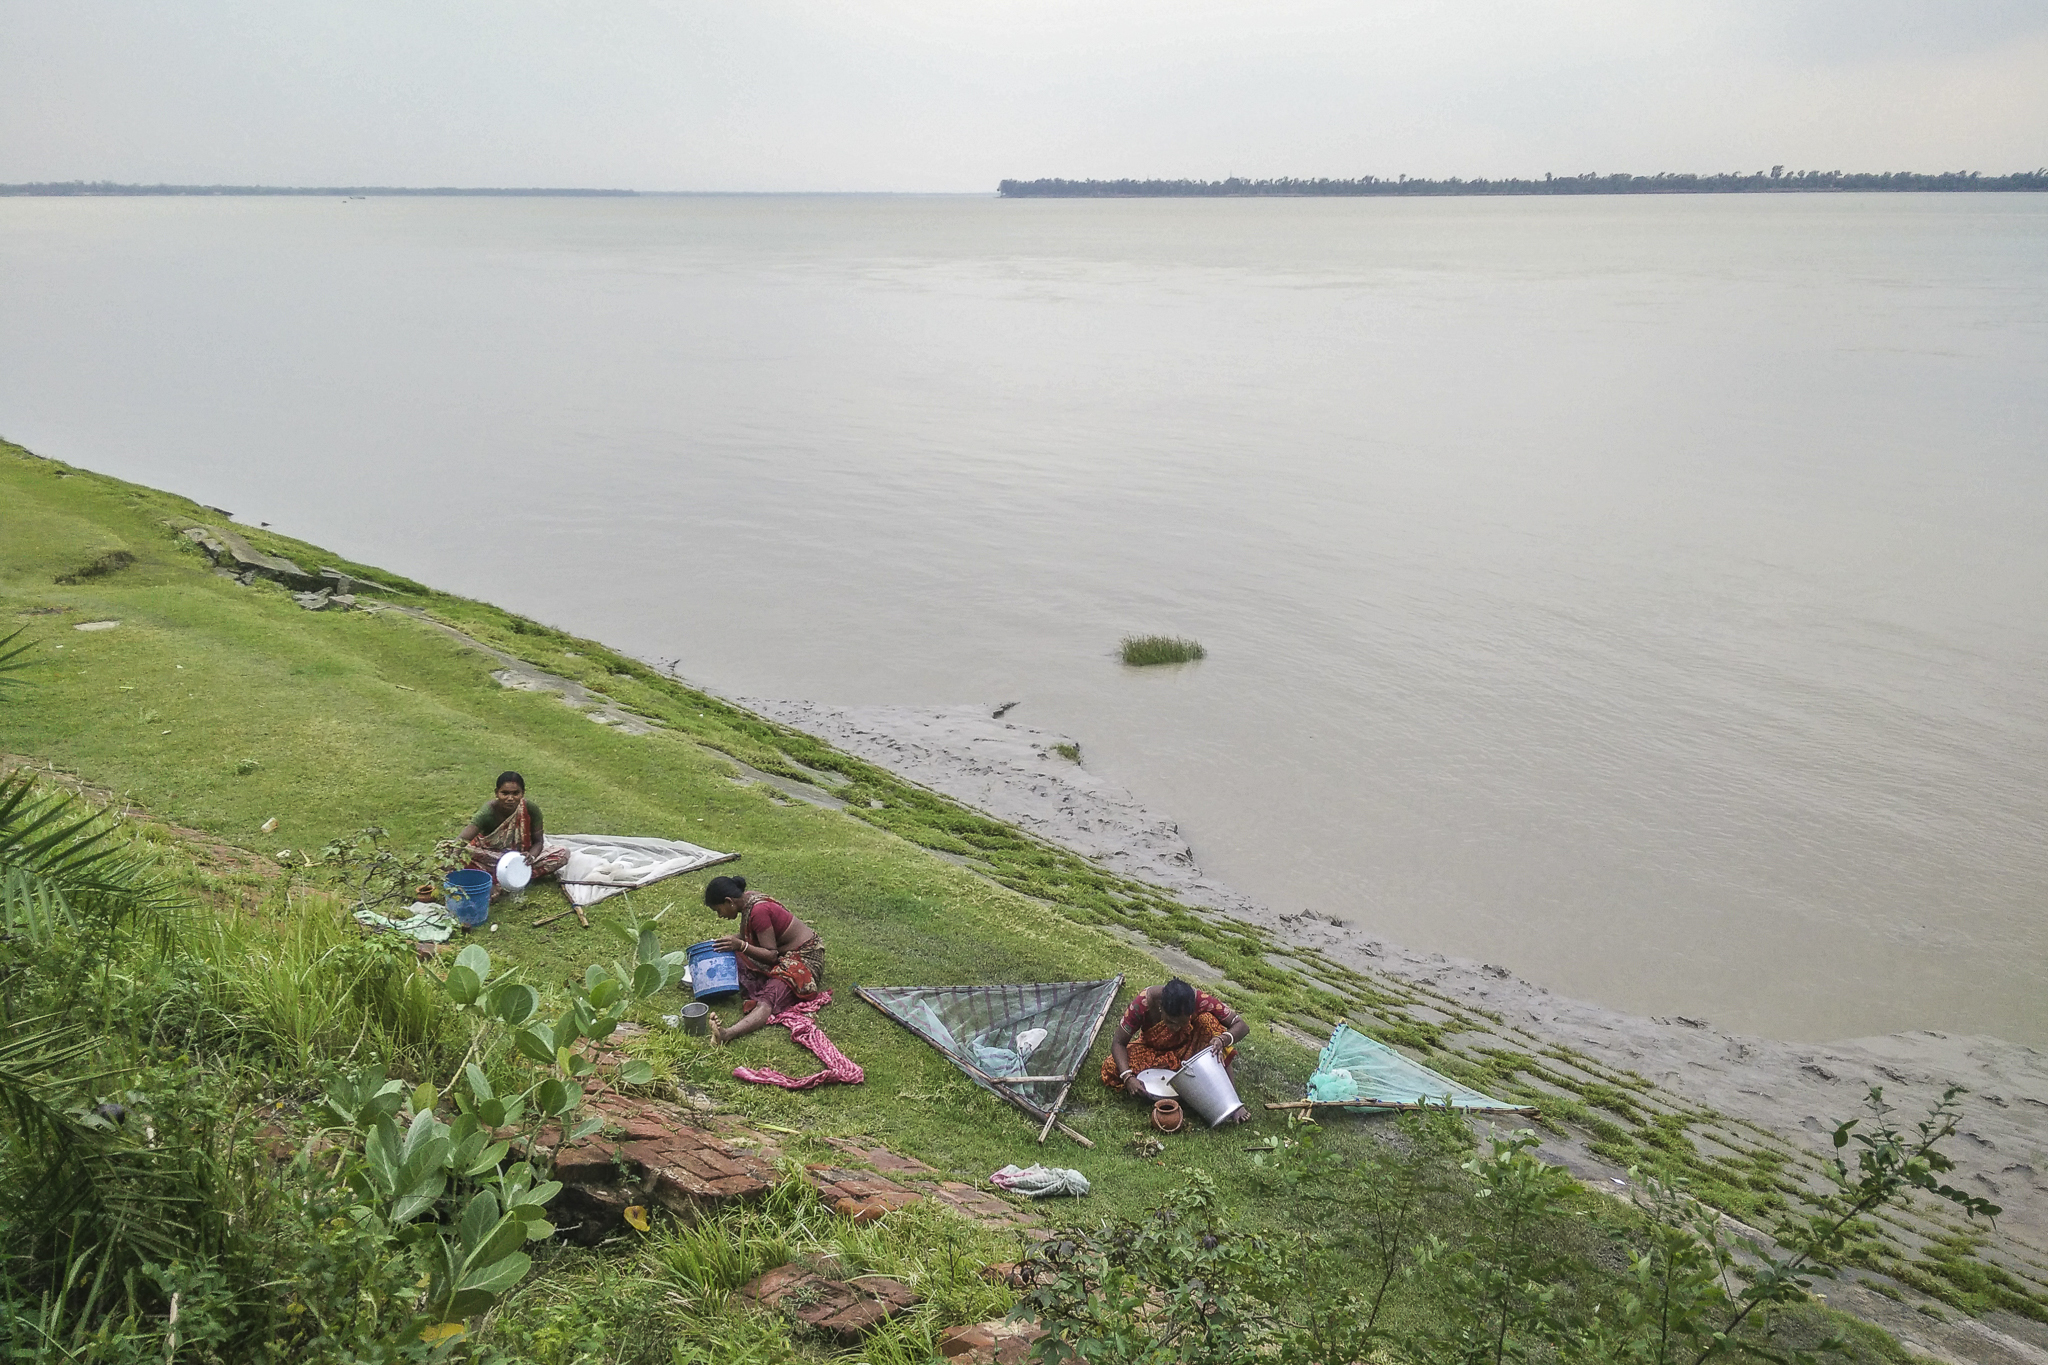 The Ganges and its people